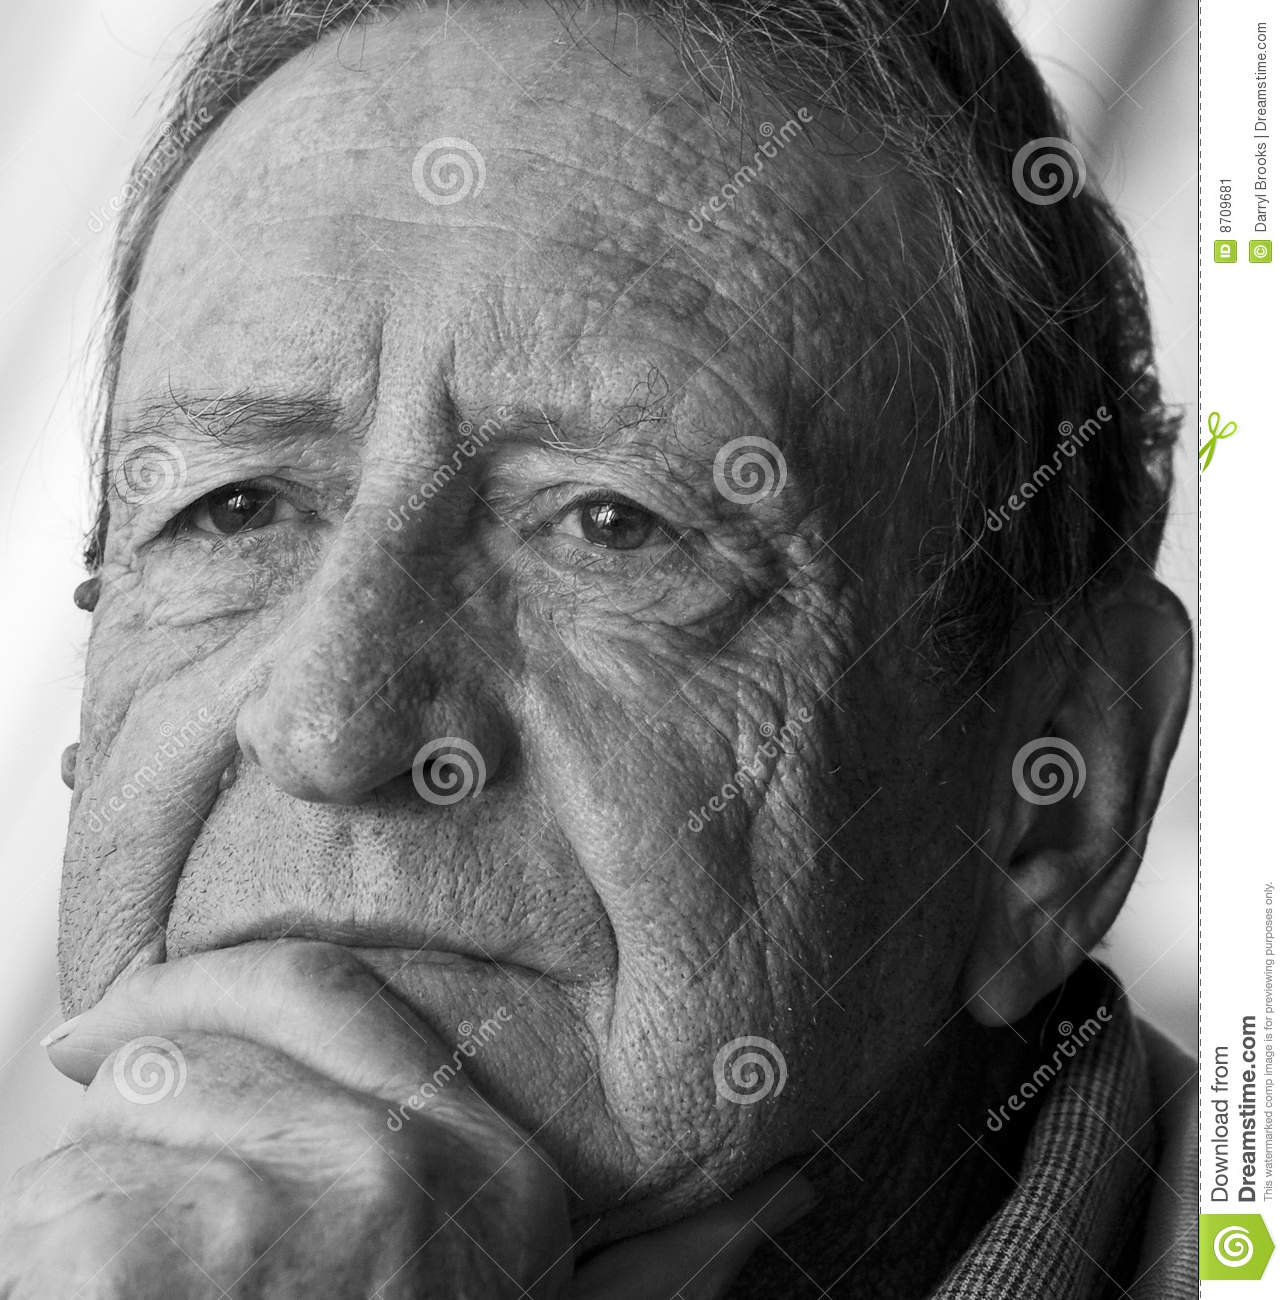 Retirement Colonies Senior Citizens Find A Home Away From: Thinking Older Man Stock Photo